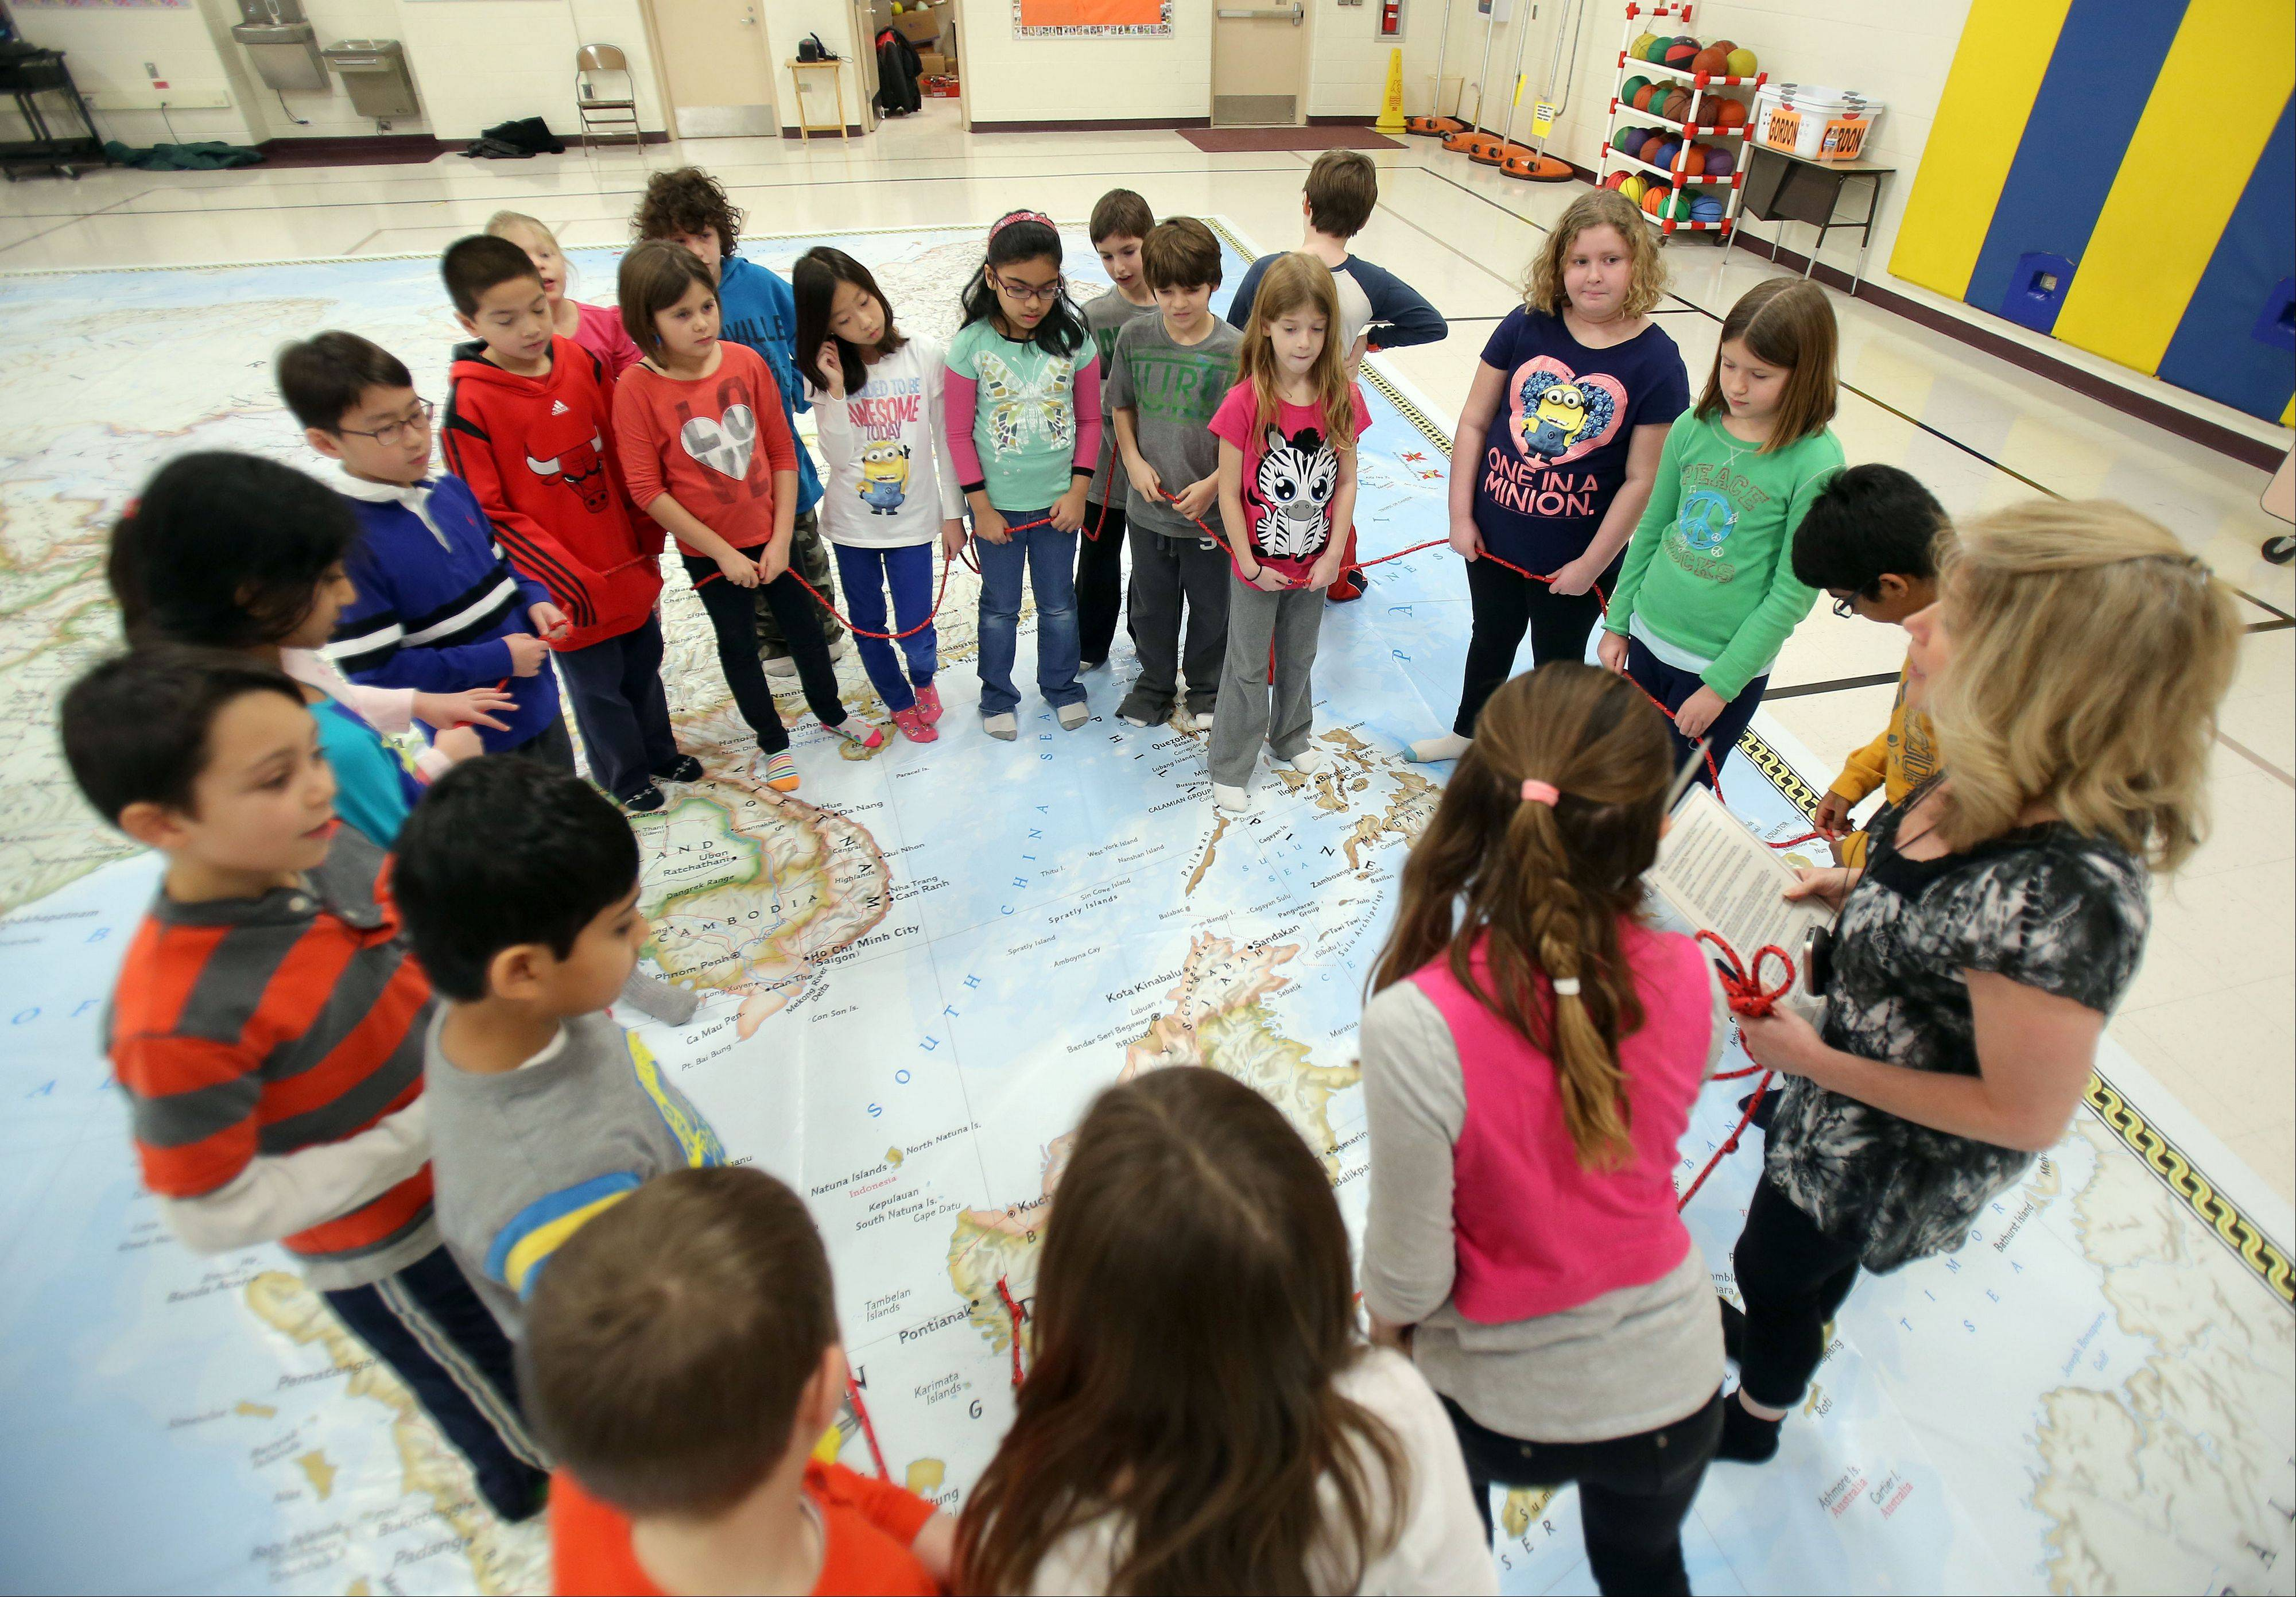 Sharyn Powell's third grade class explored a giant map of Asia at Half Day School in Lincolnshire on Friday. The map measures 26 feet by 35 feet.